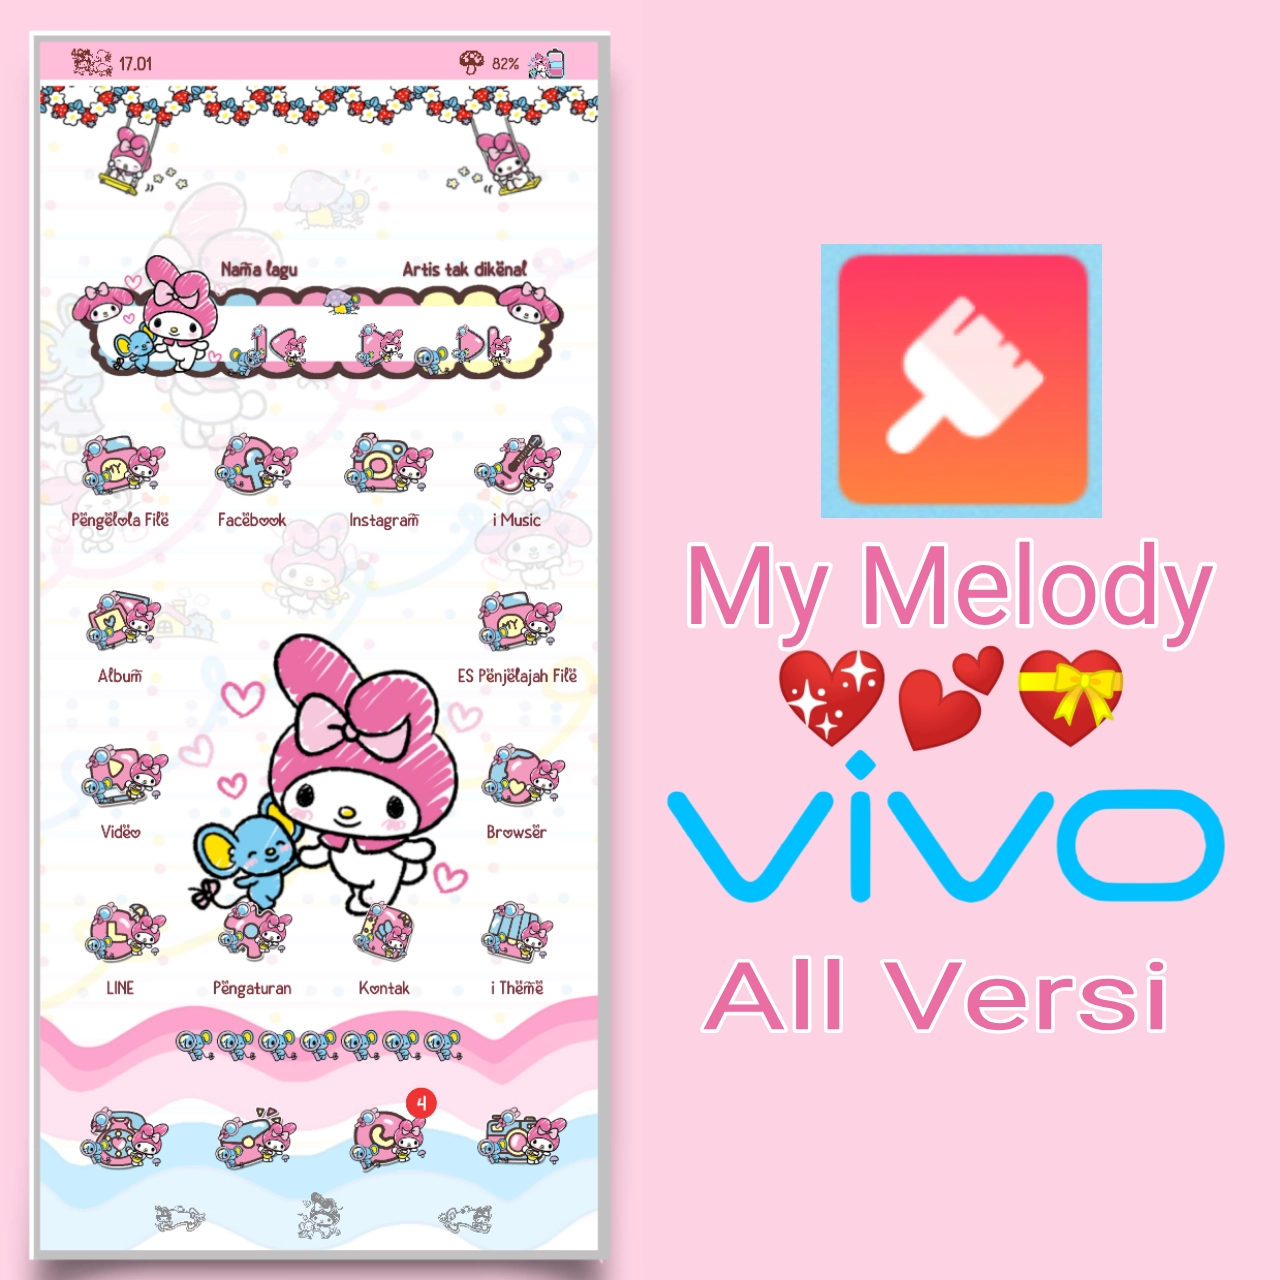 My Melody Love Theme for VIVO All Versi